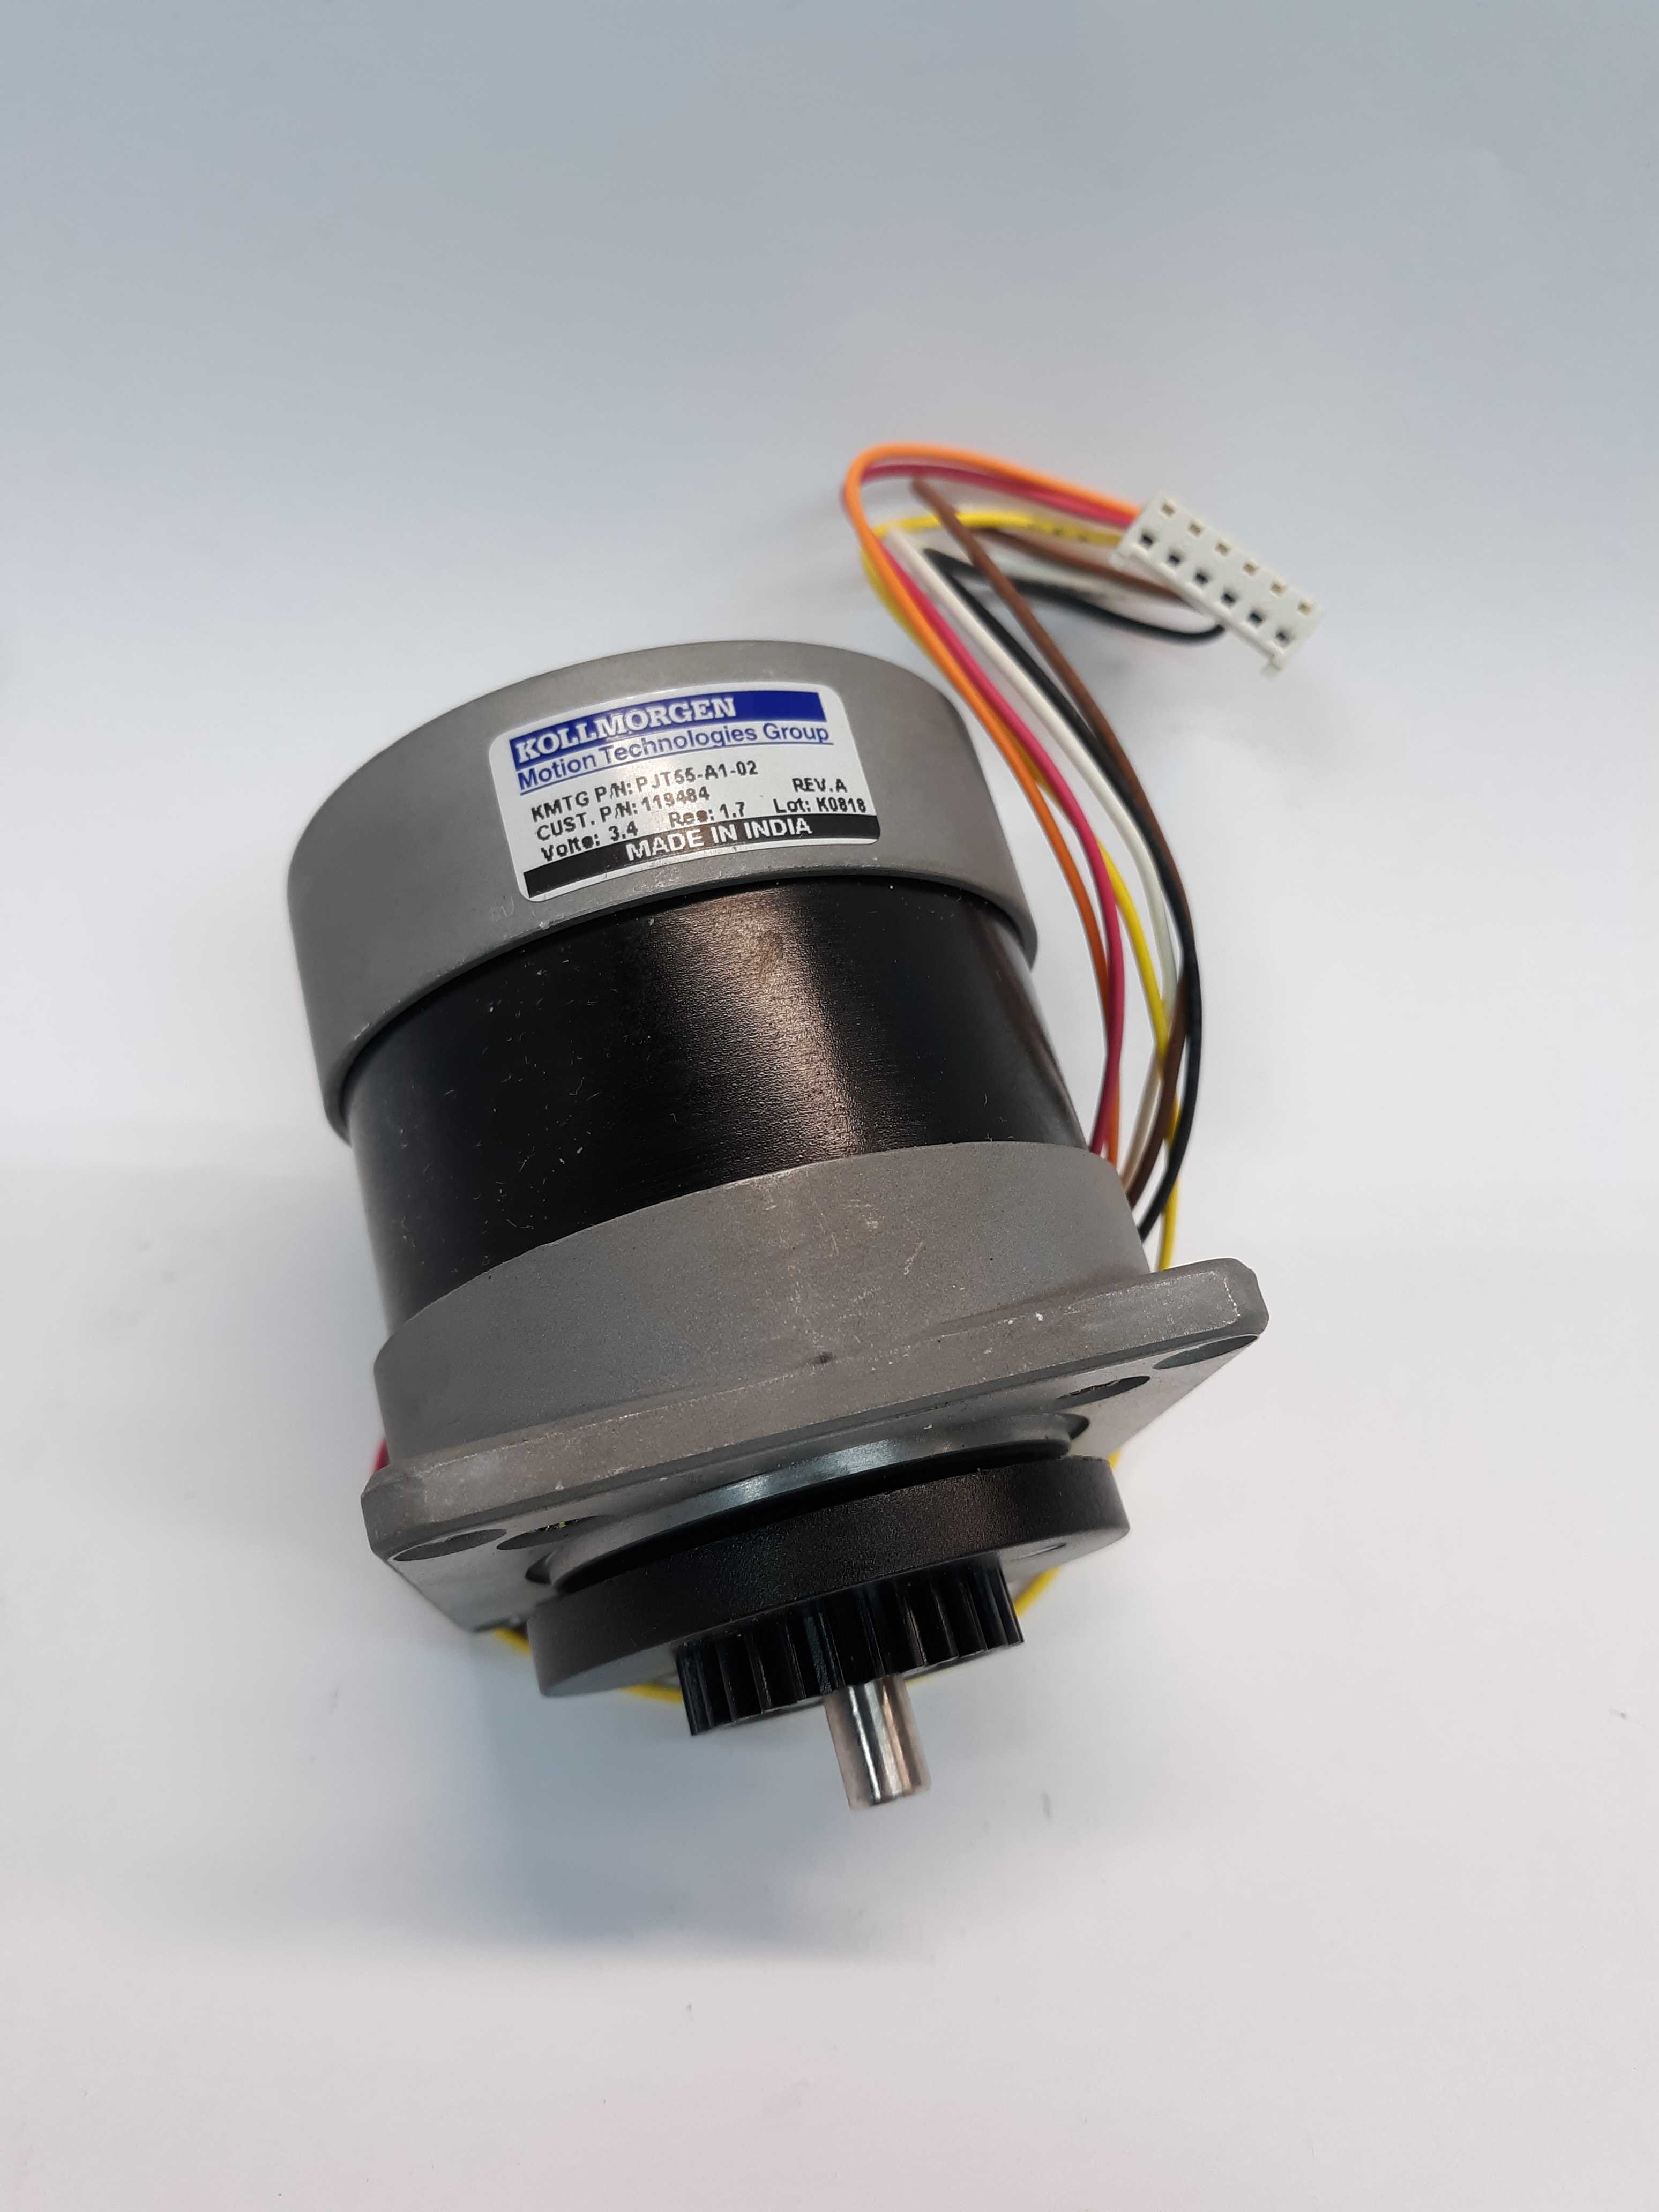 Kollmorgen PJT55-A1-02 Stepper Motor 3.4V Res 1.7 Lot of 2